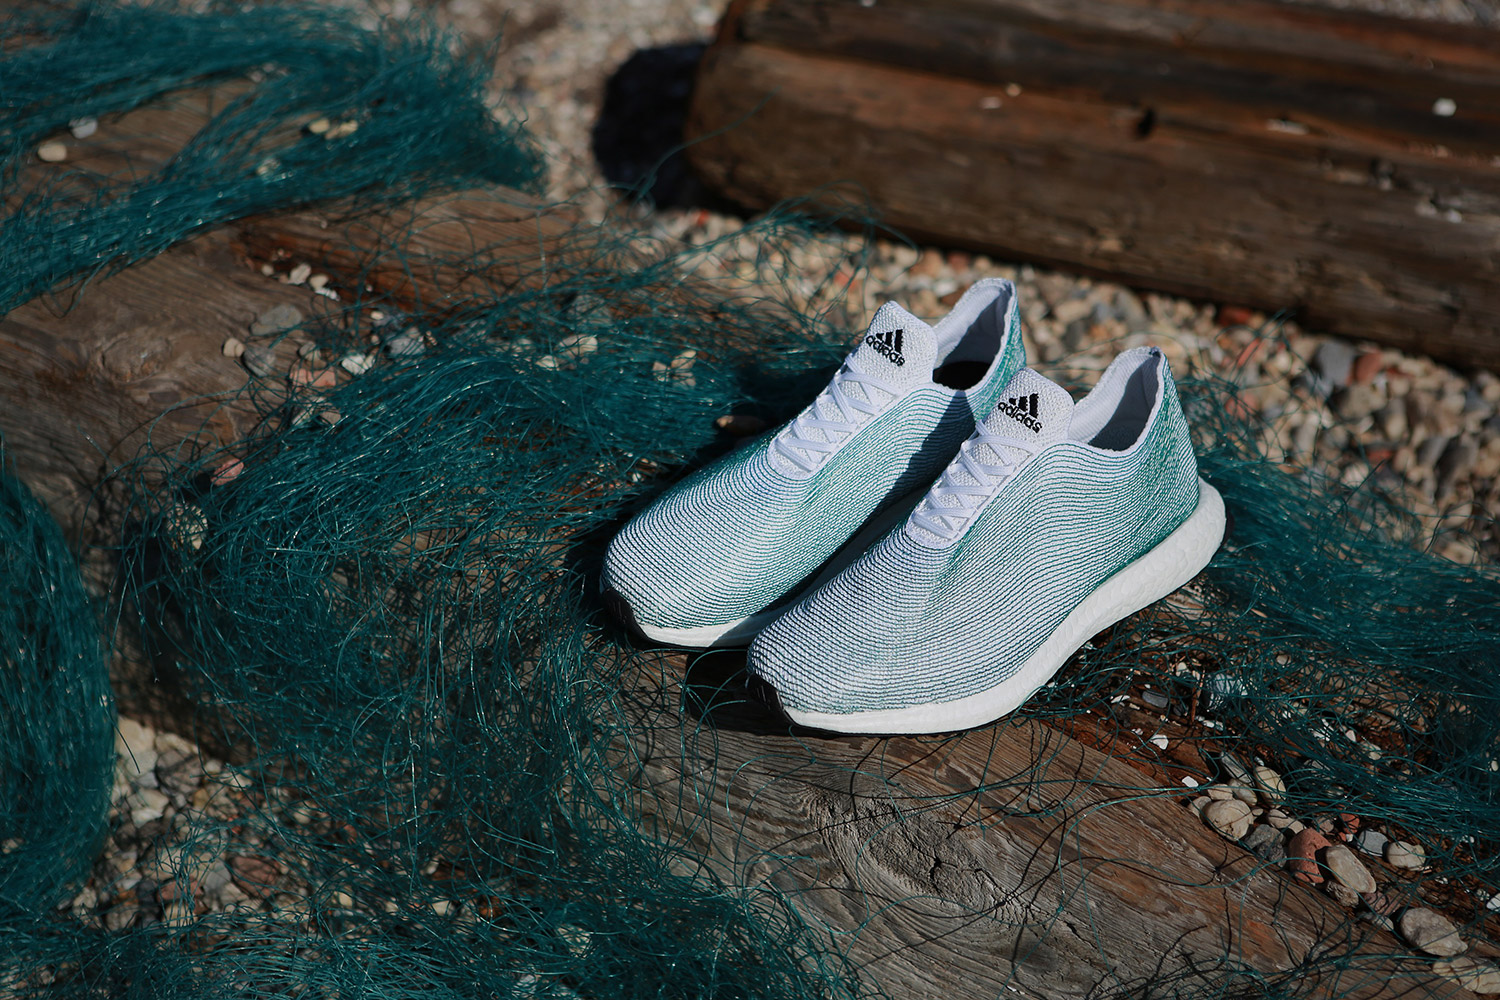 Adidas x Parley for the Ocean